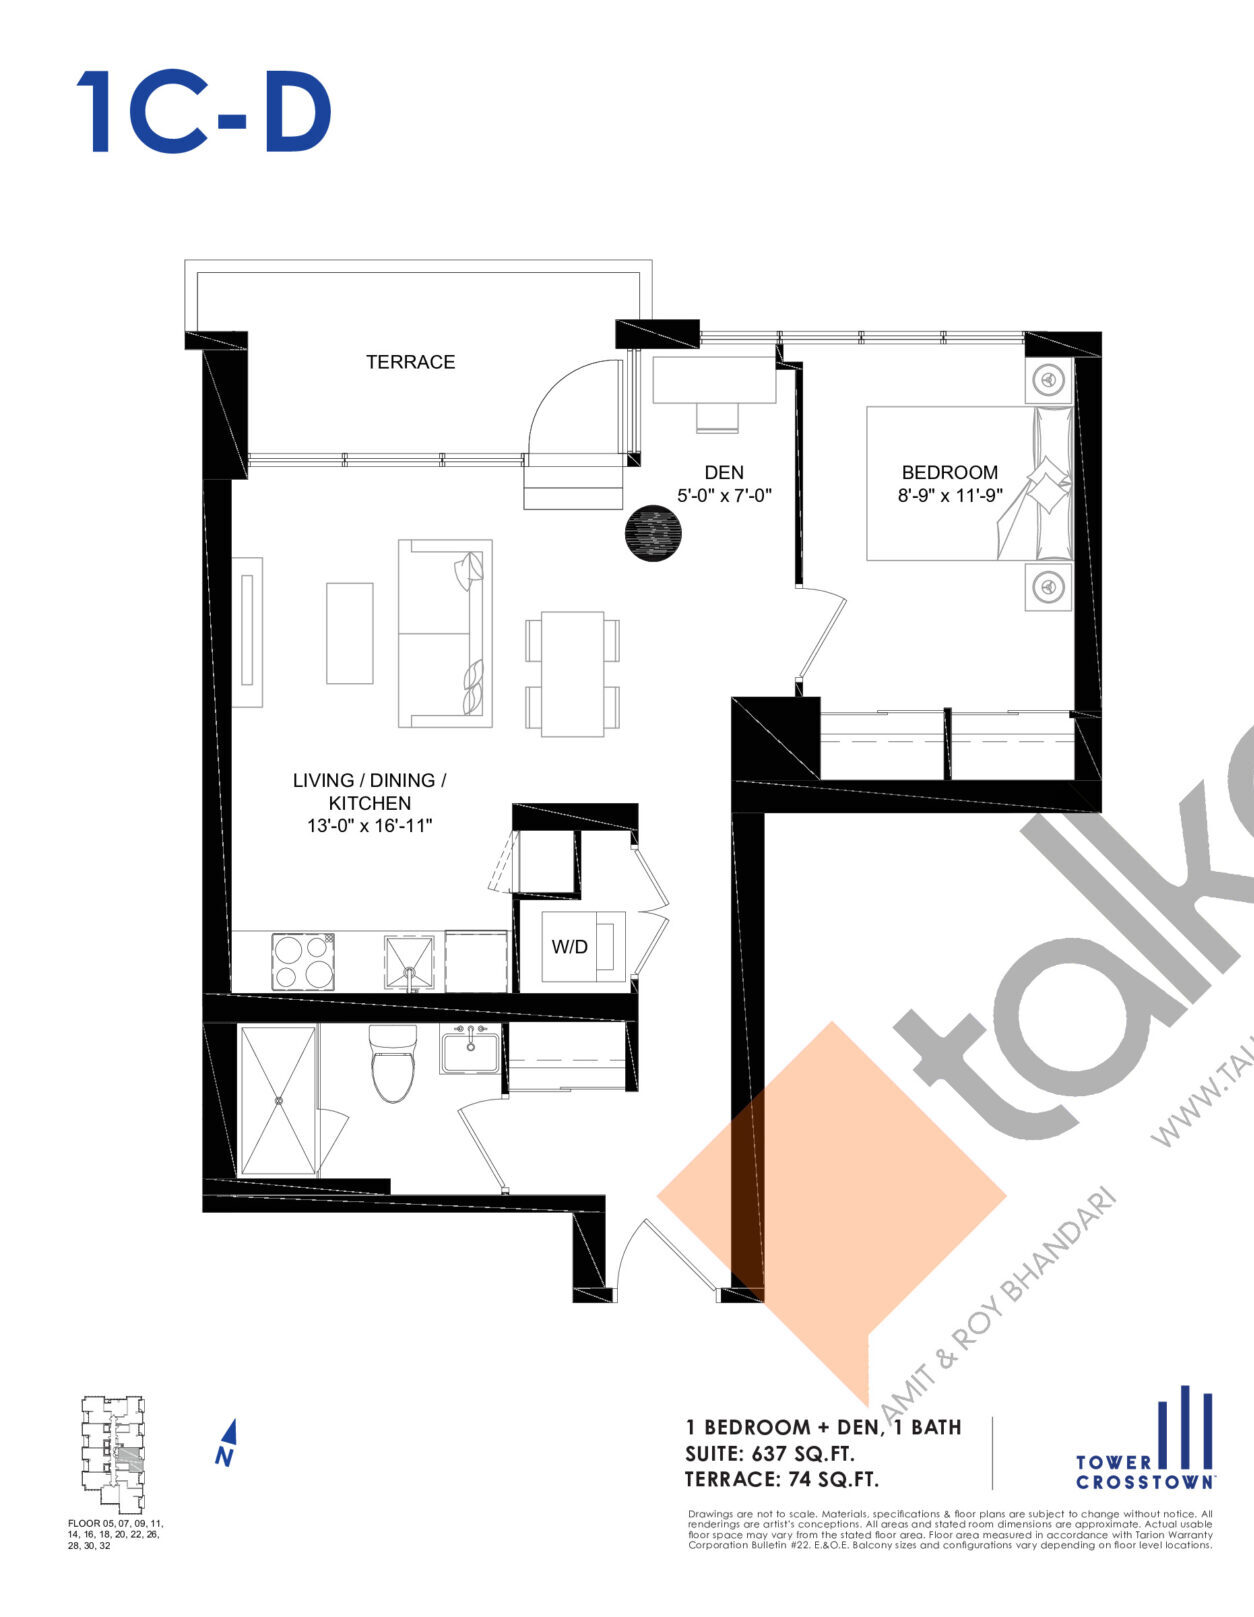 1C-D Floor Plan at Crosstown Tower 3 Condos - 637 sq.ft